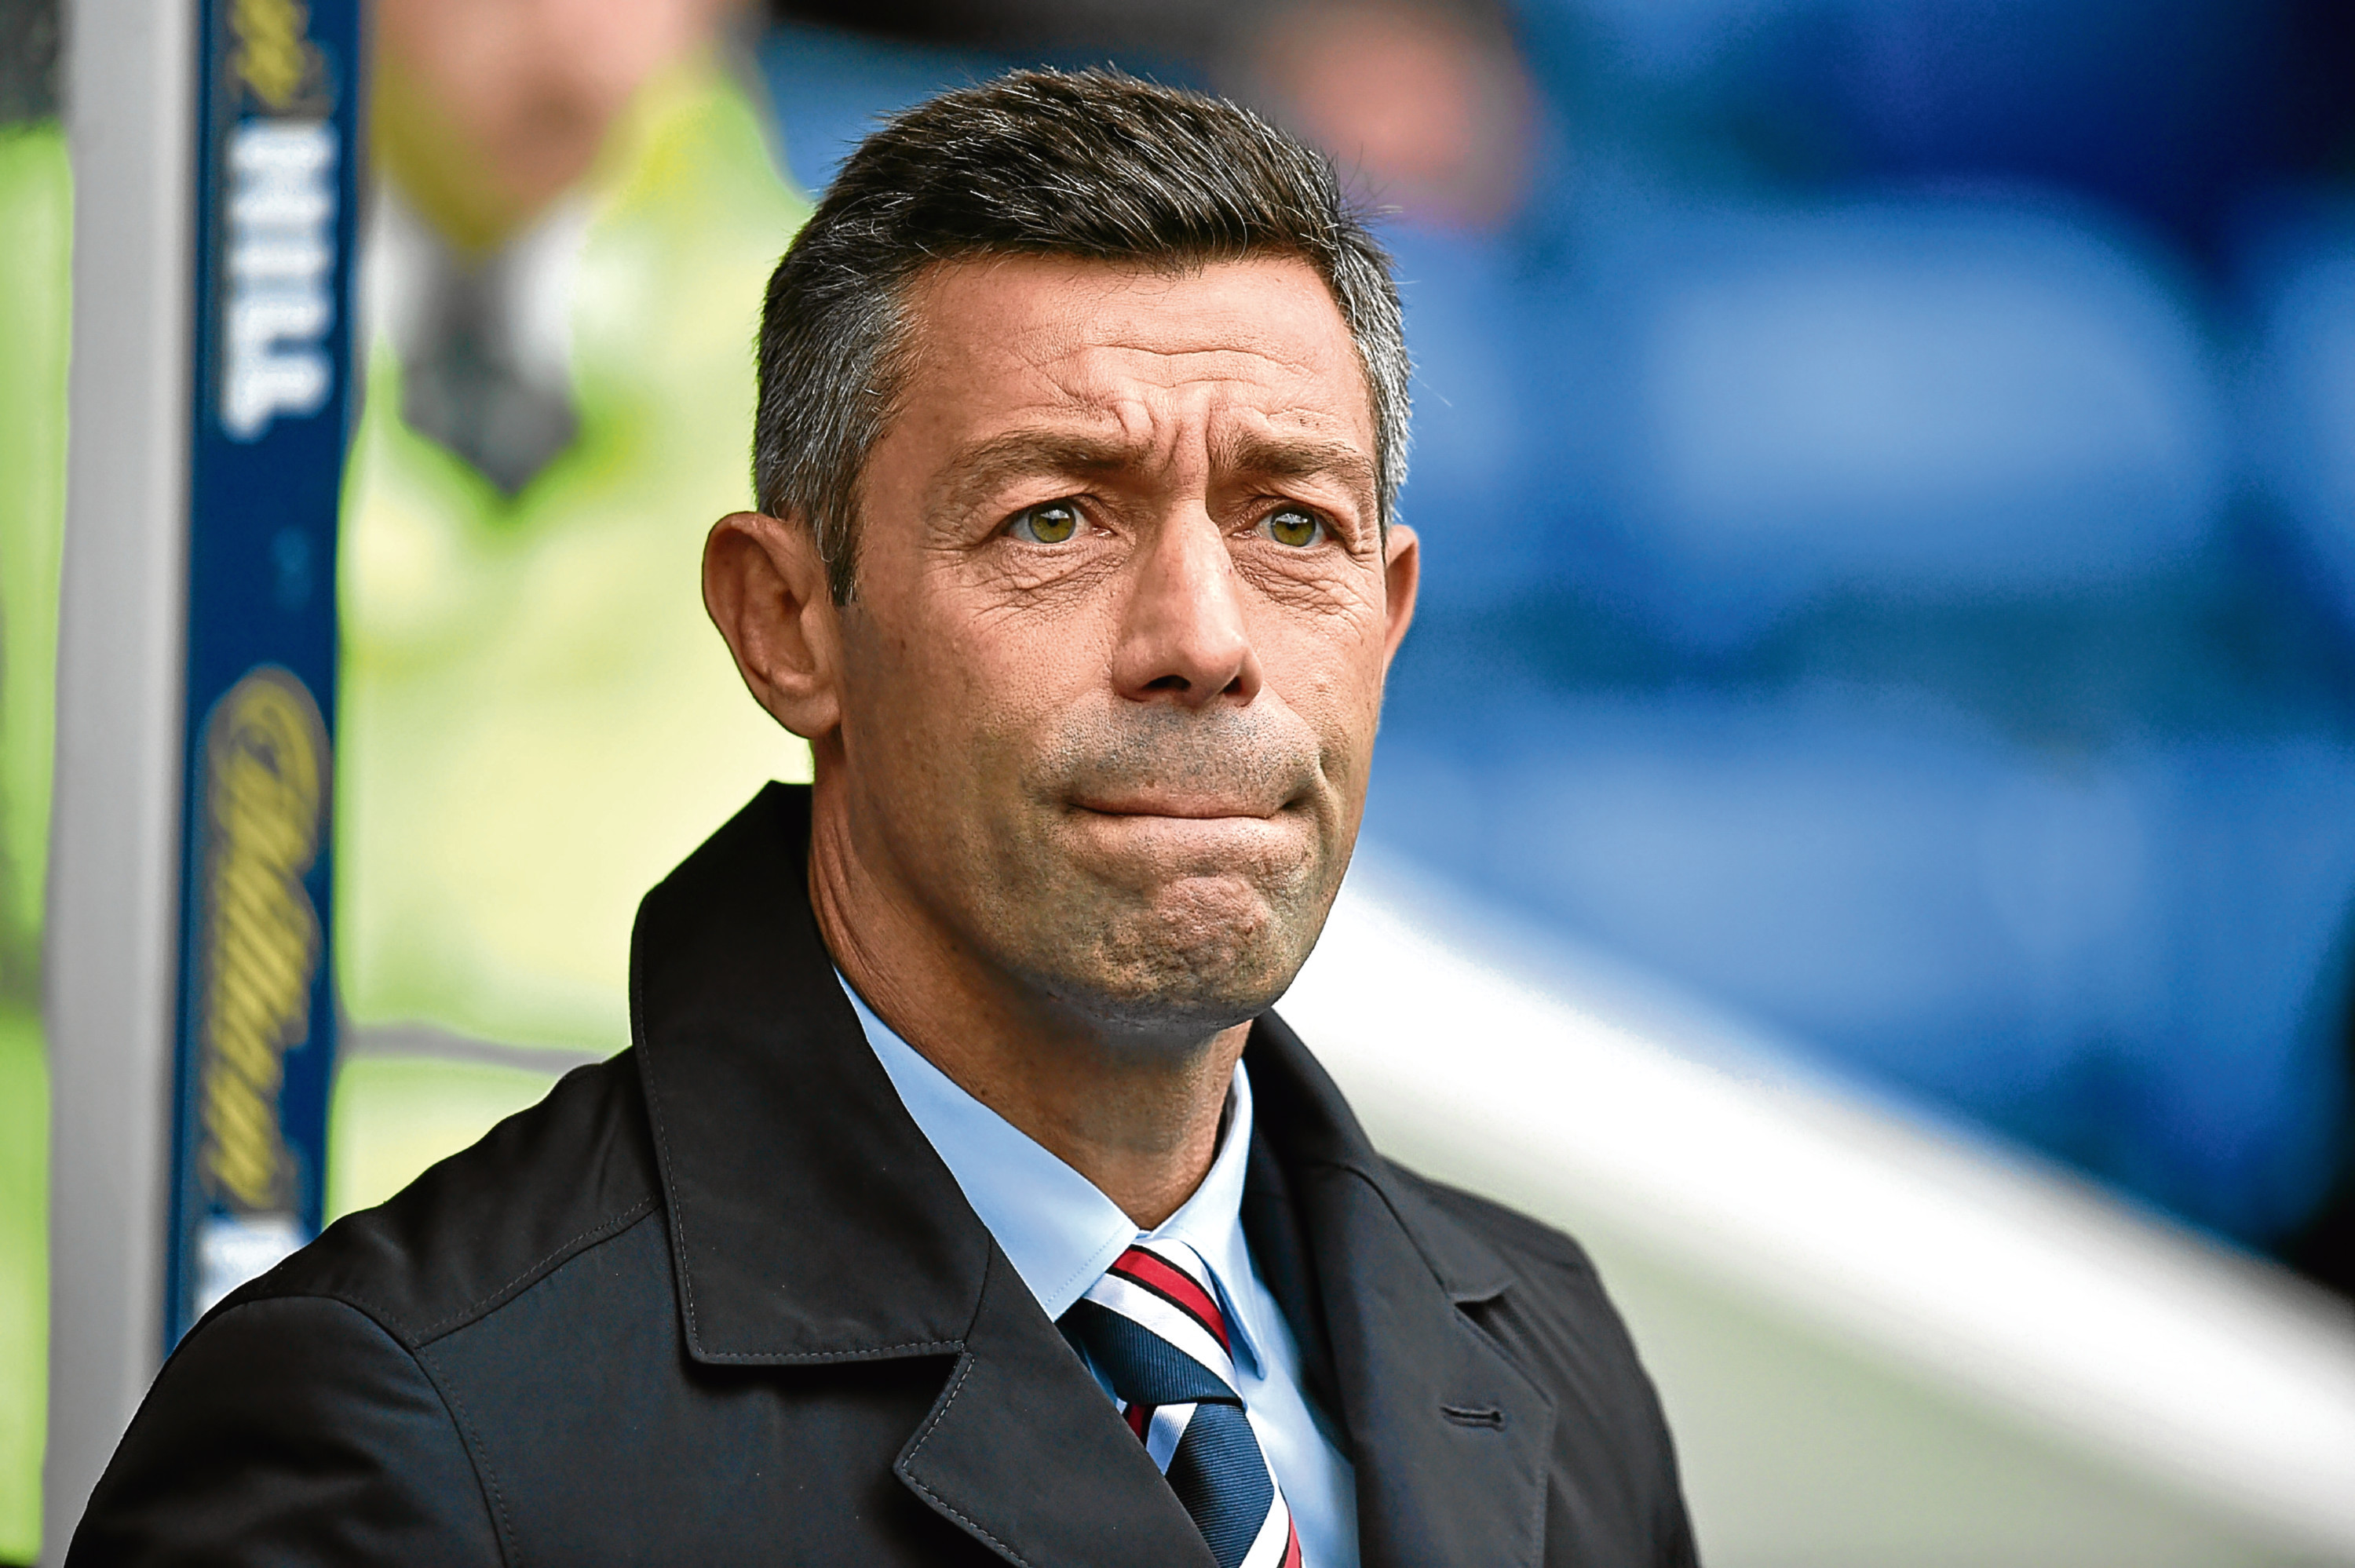 Pedro Caixinha has been sacked by Rangers